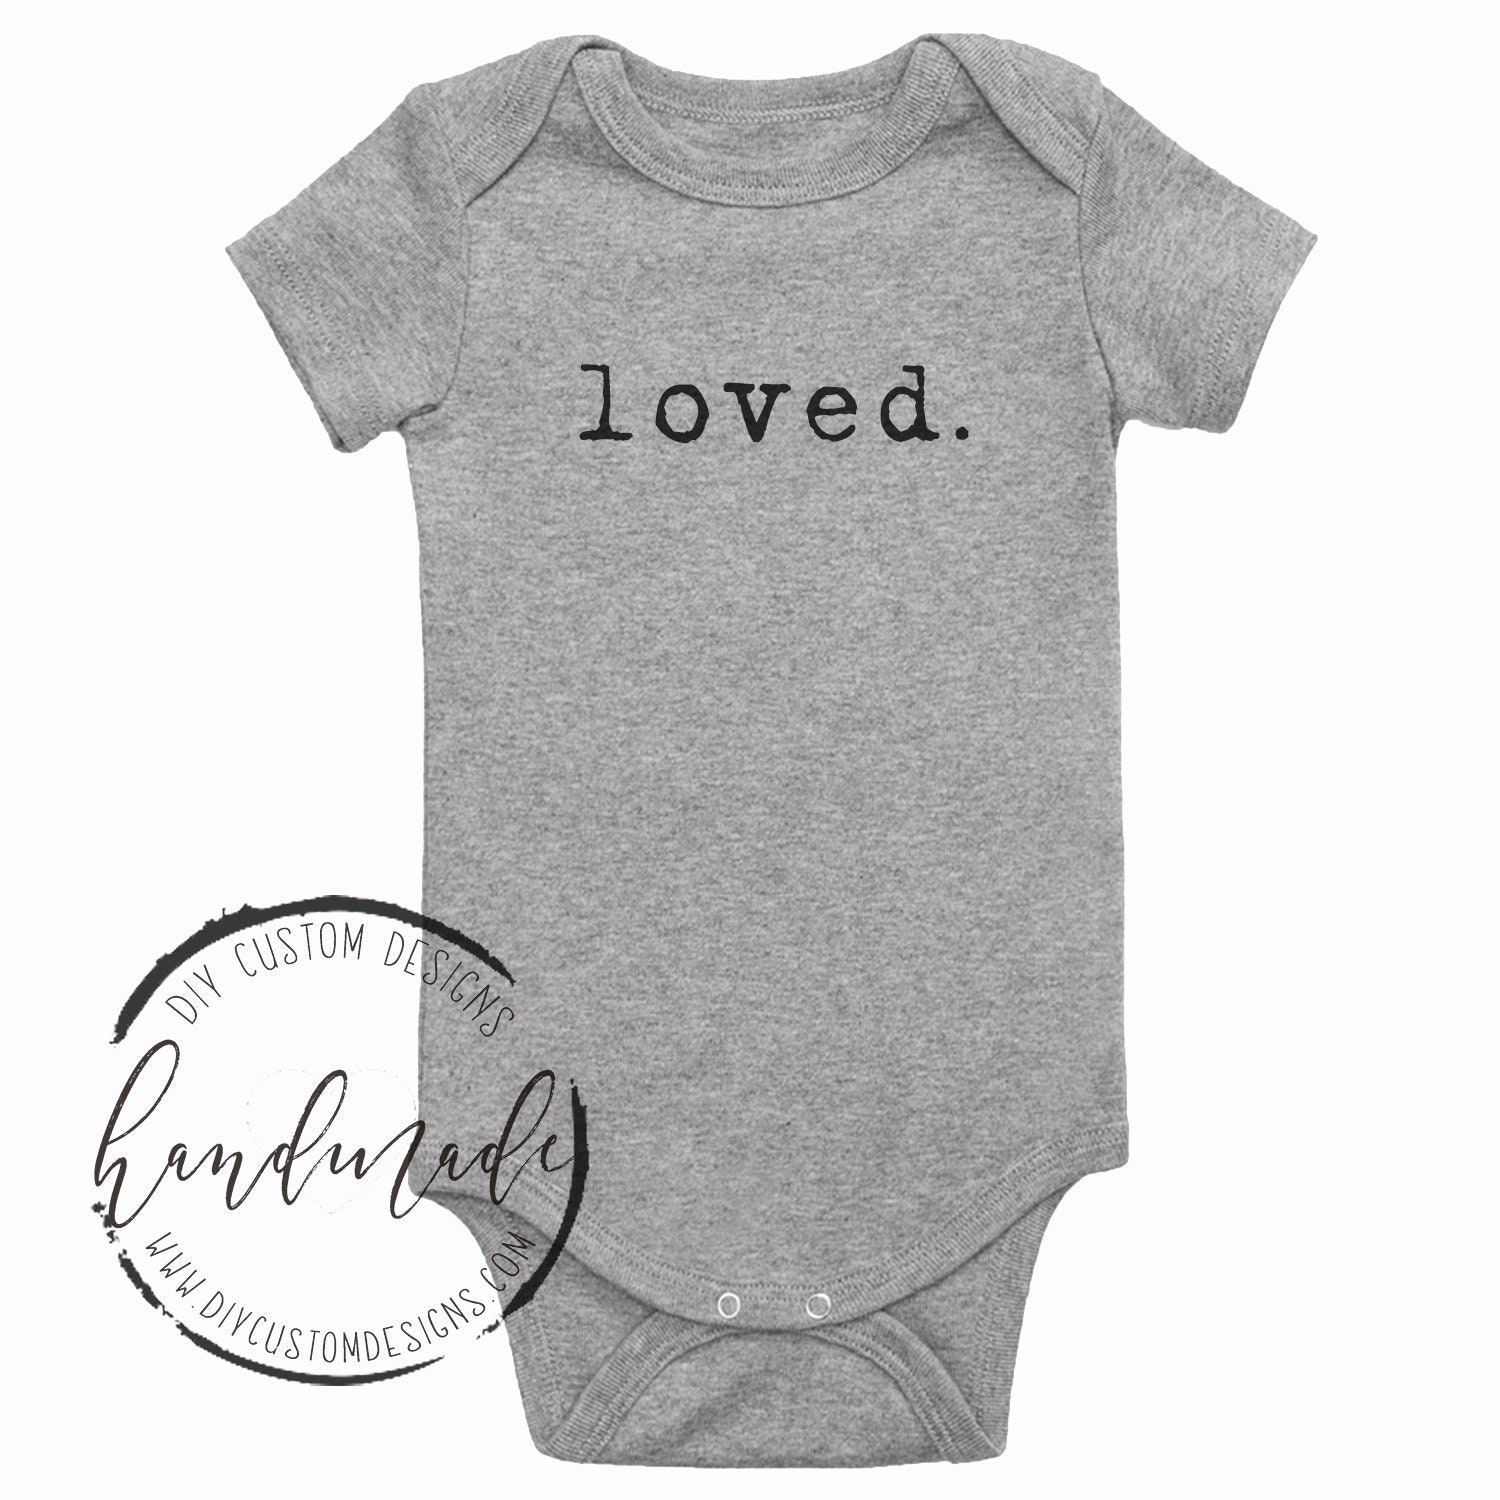 64e4430bf Loved ONESIE®, Pregnancy Announcement ONESIE®, Boho Baby, Baby  Announcement, Loved Baby Onesies®, Rainbow Baby, Baby Shower Gift